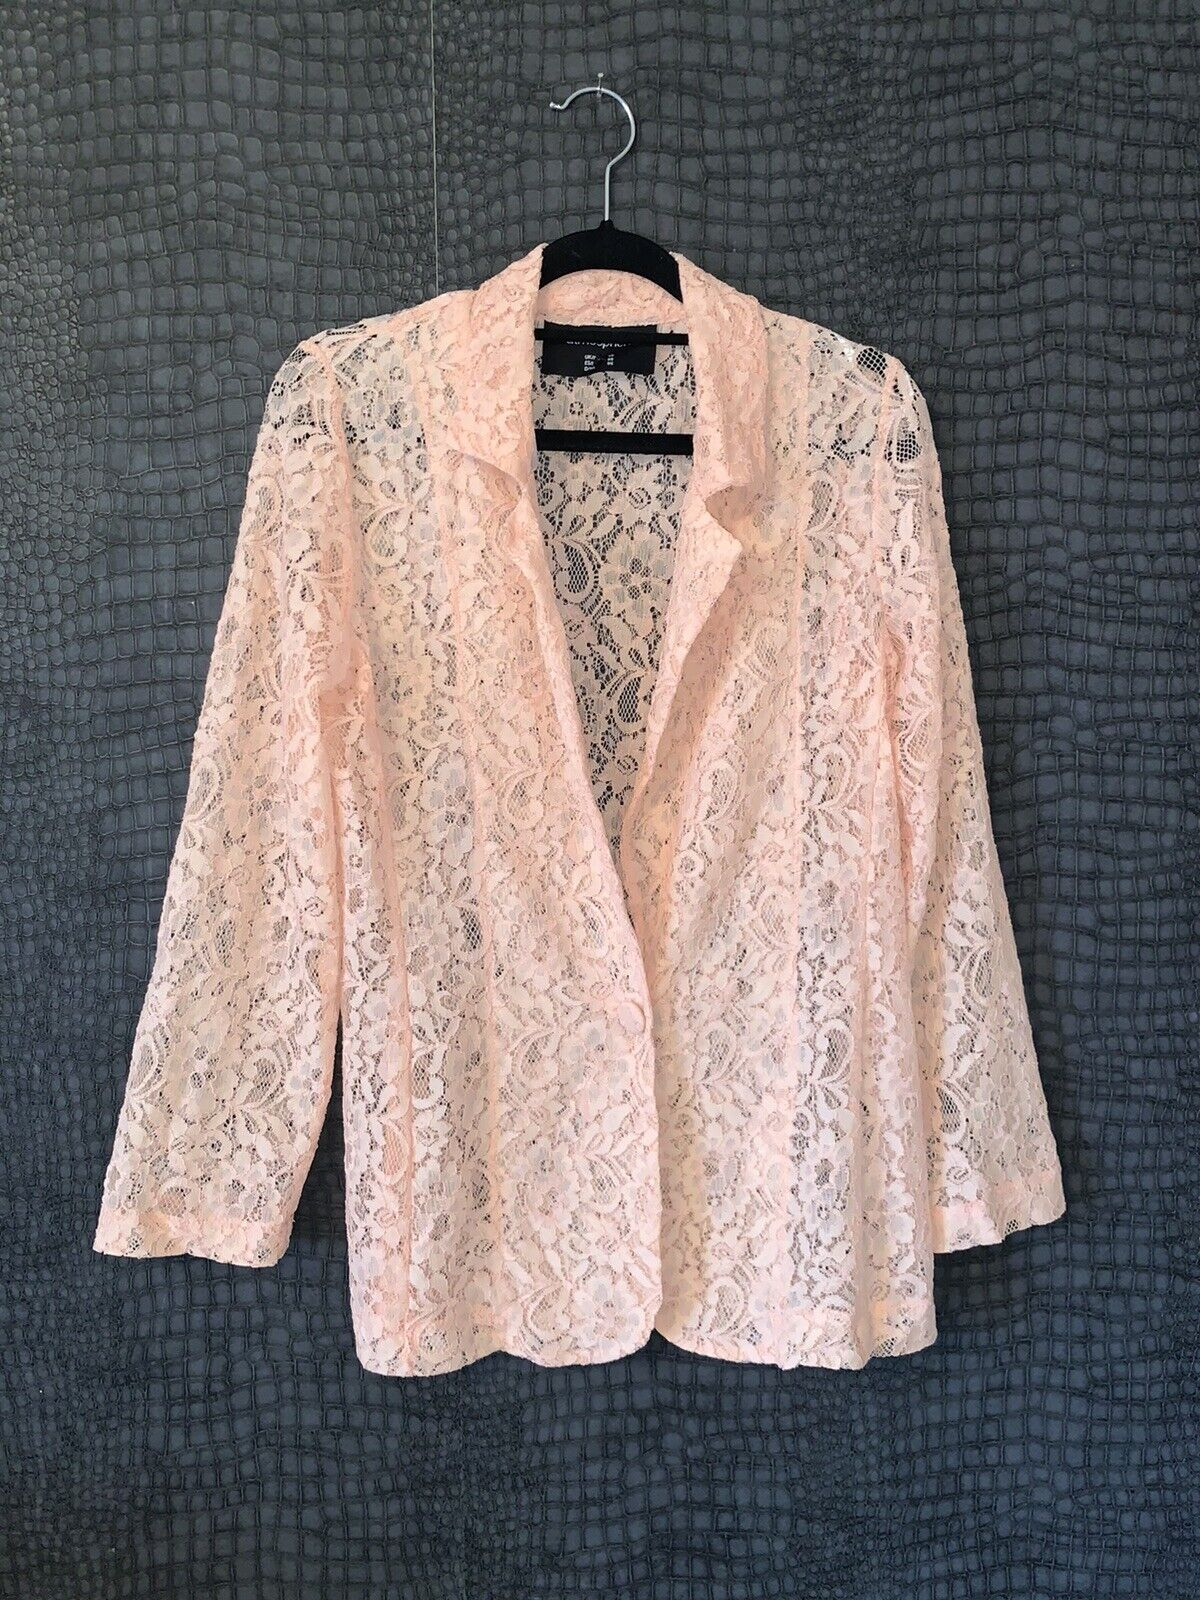 WORN ONCE - IMMACULATE - PRIMARK ATMOSPHERE LACE BLAXER - UK 10